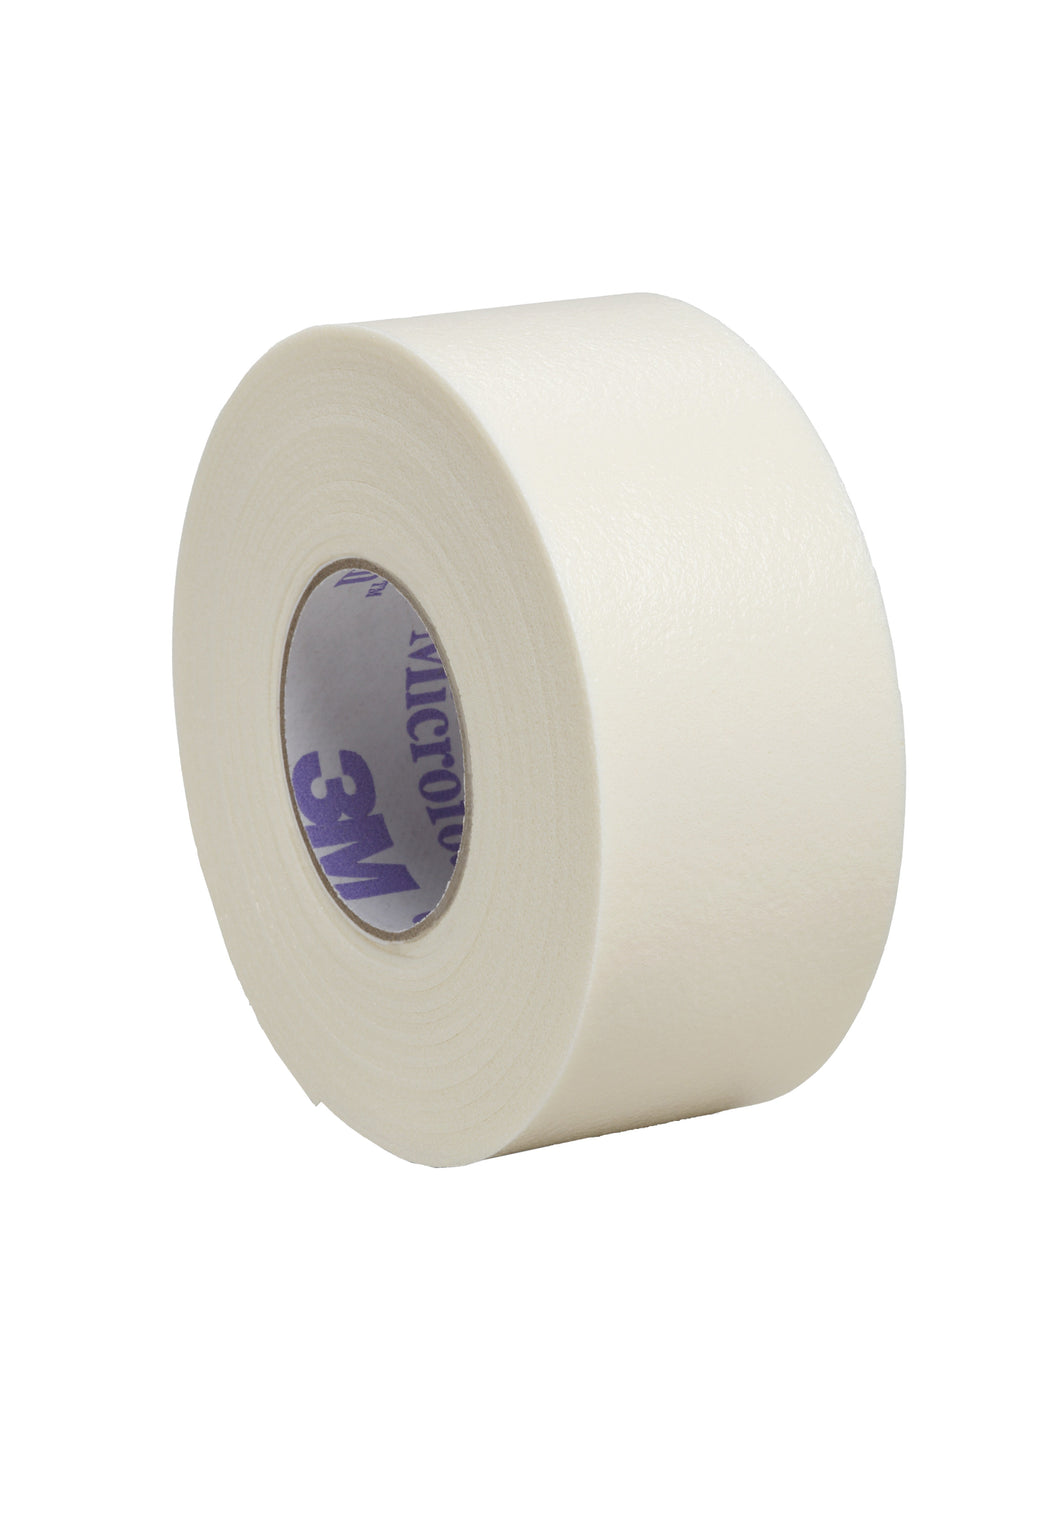 3M(TM) Microfoam(TM) Medical Tape, 1 Inch x 51/2 Yard